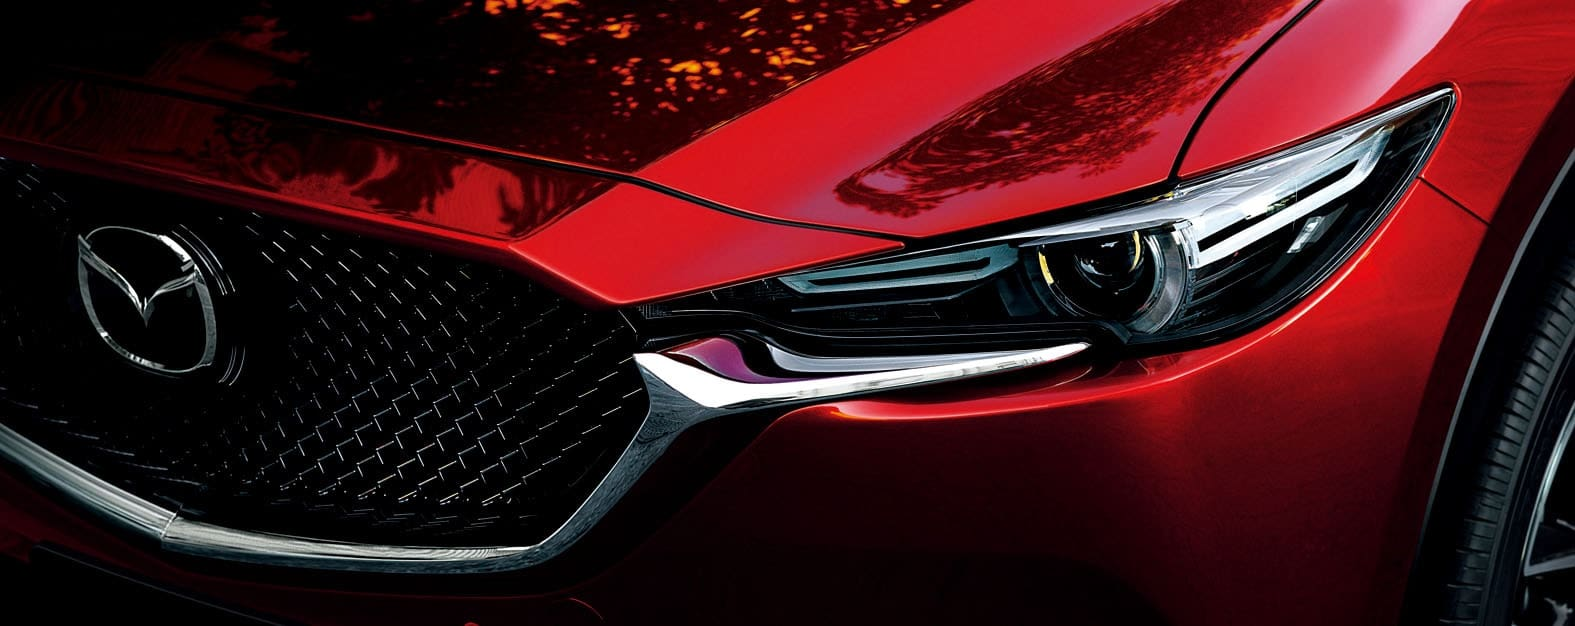 Mazda to Introduce Next-Generation Engine in 2019